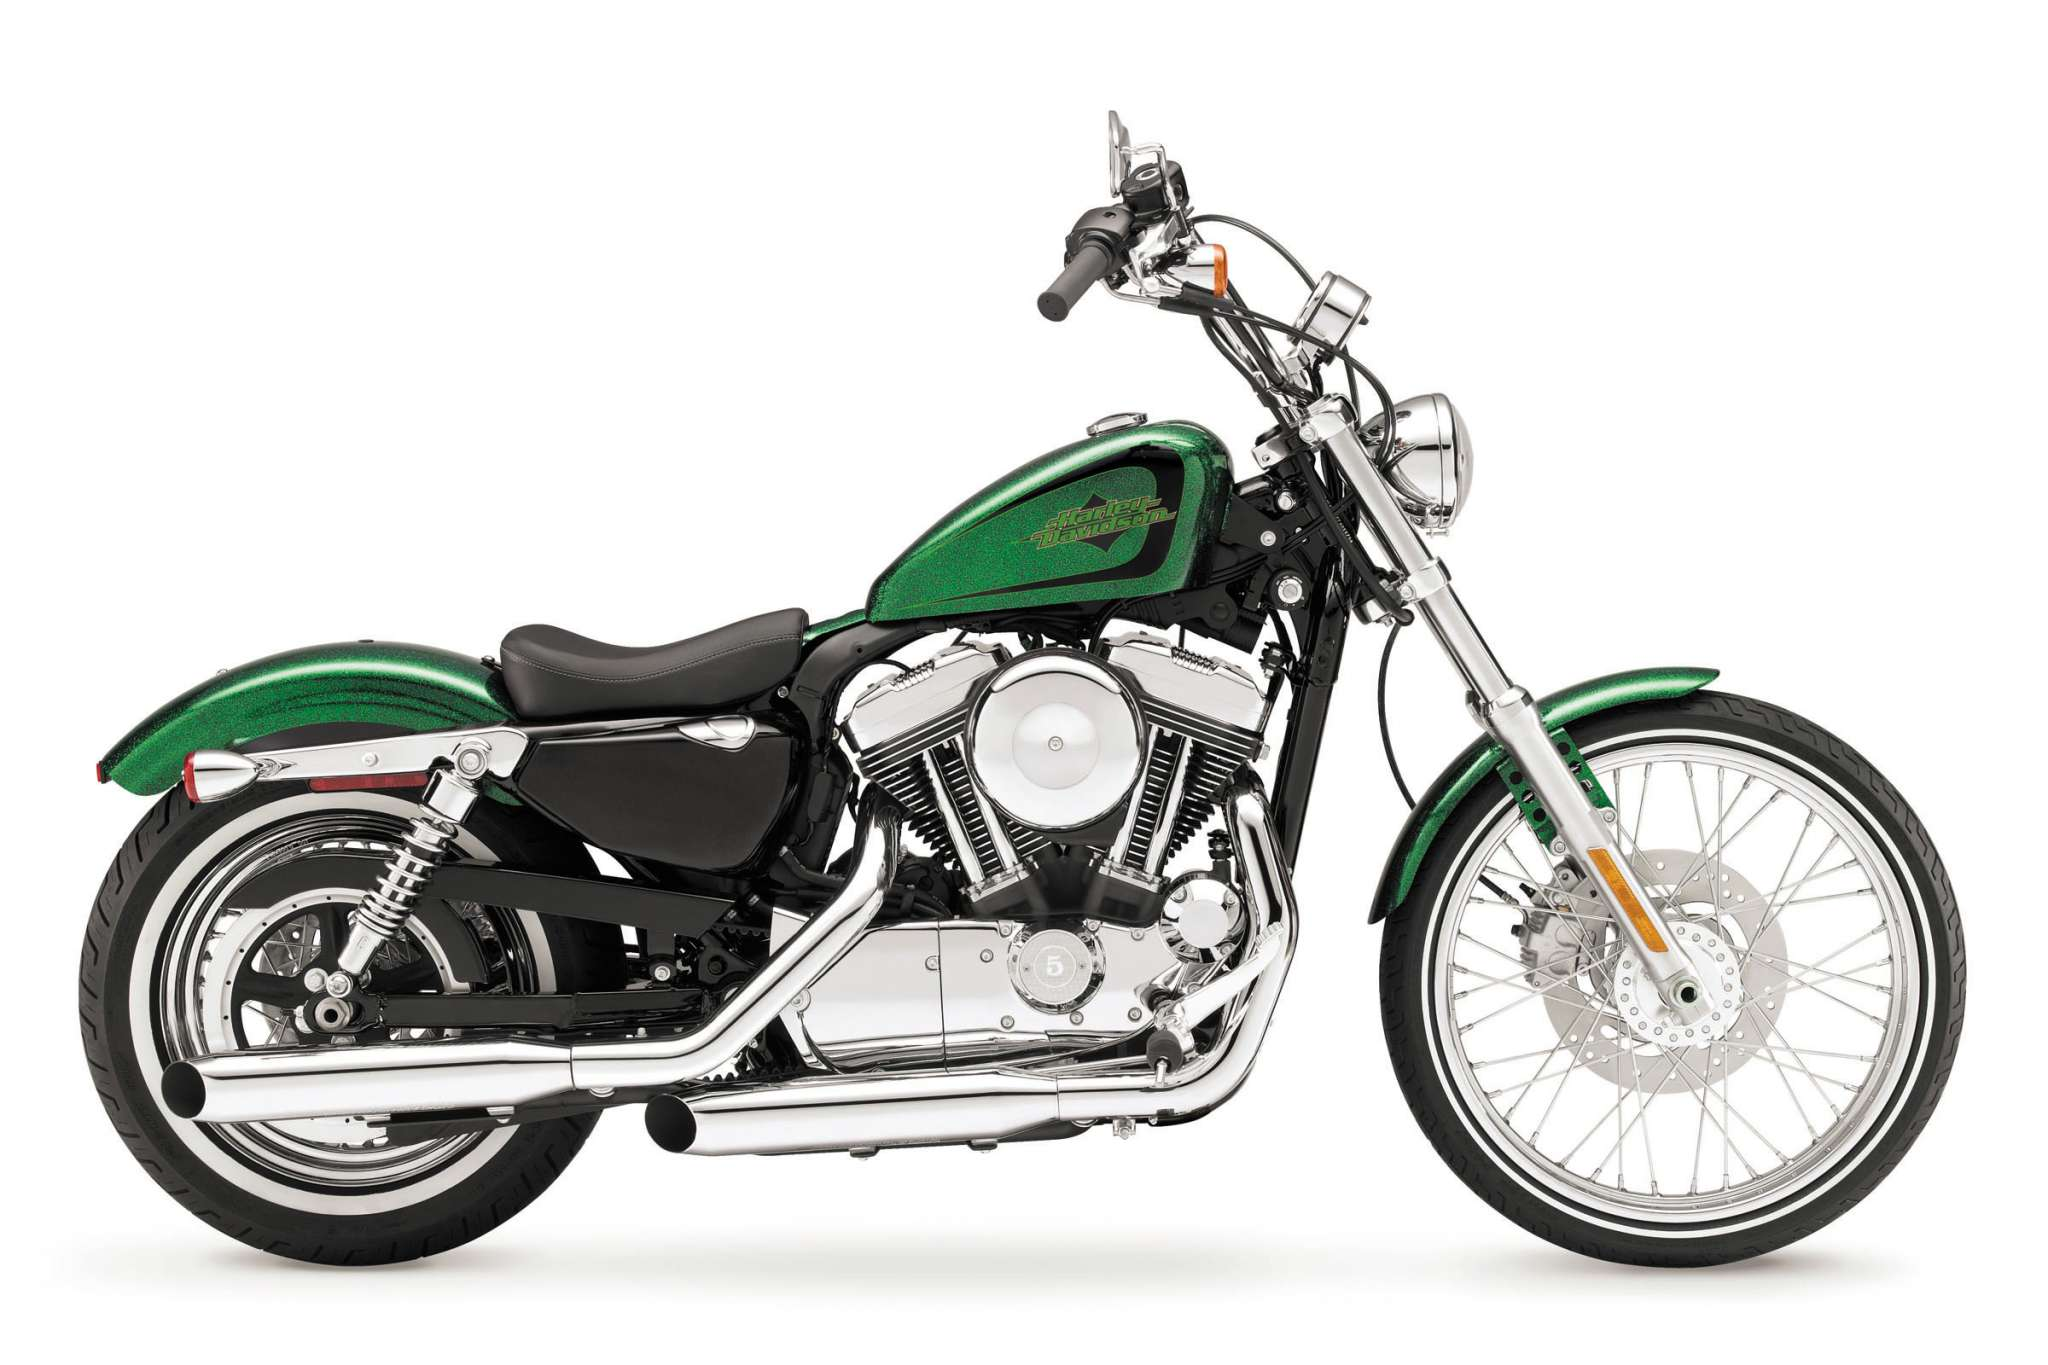 Harley Davidson 2013 Sportster 72 Wiring Diagram Electrical 2014 Ultra Classic Xl1200v Seventy Two Review 1973